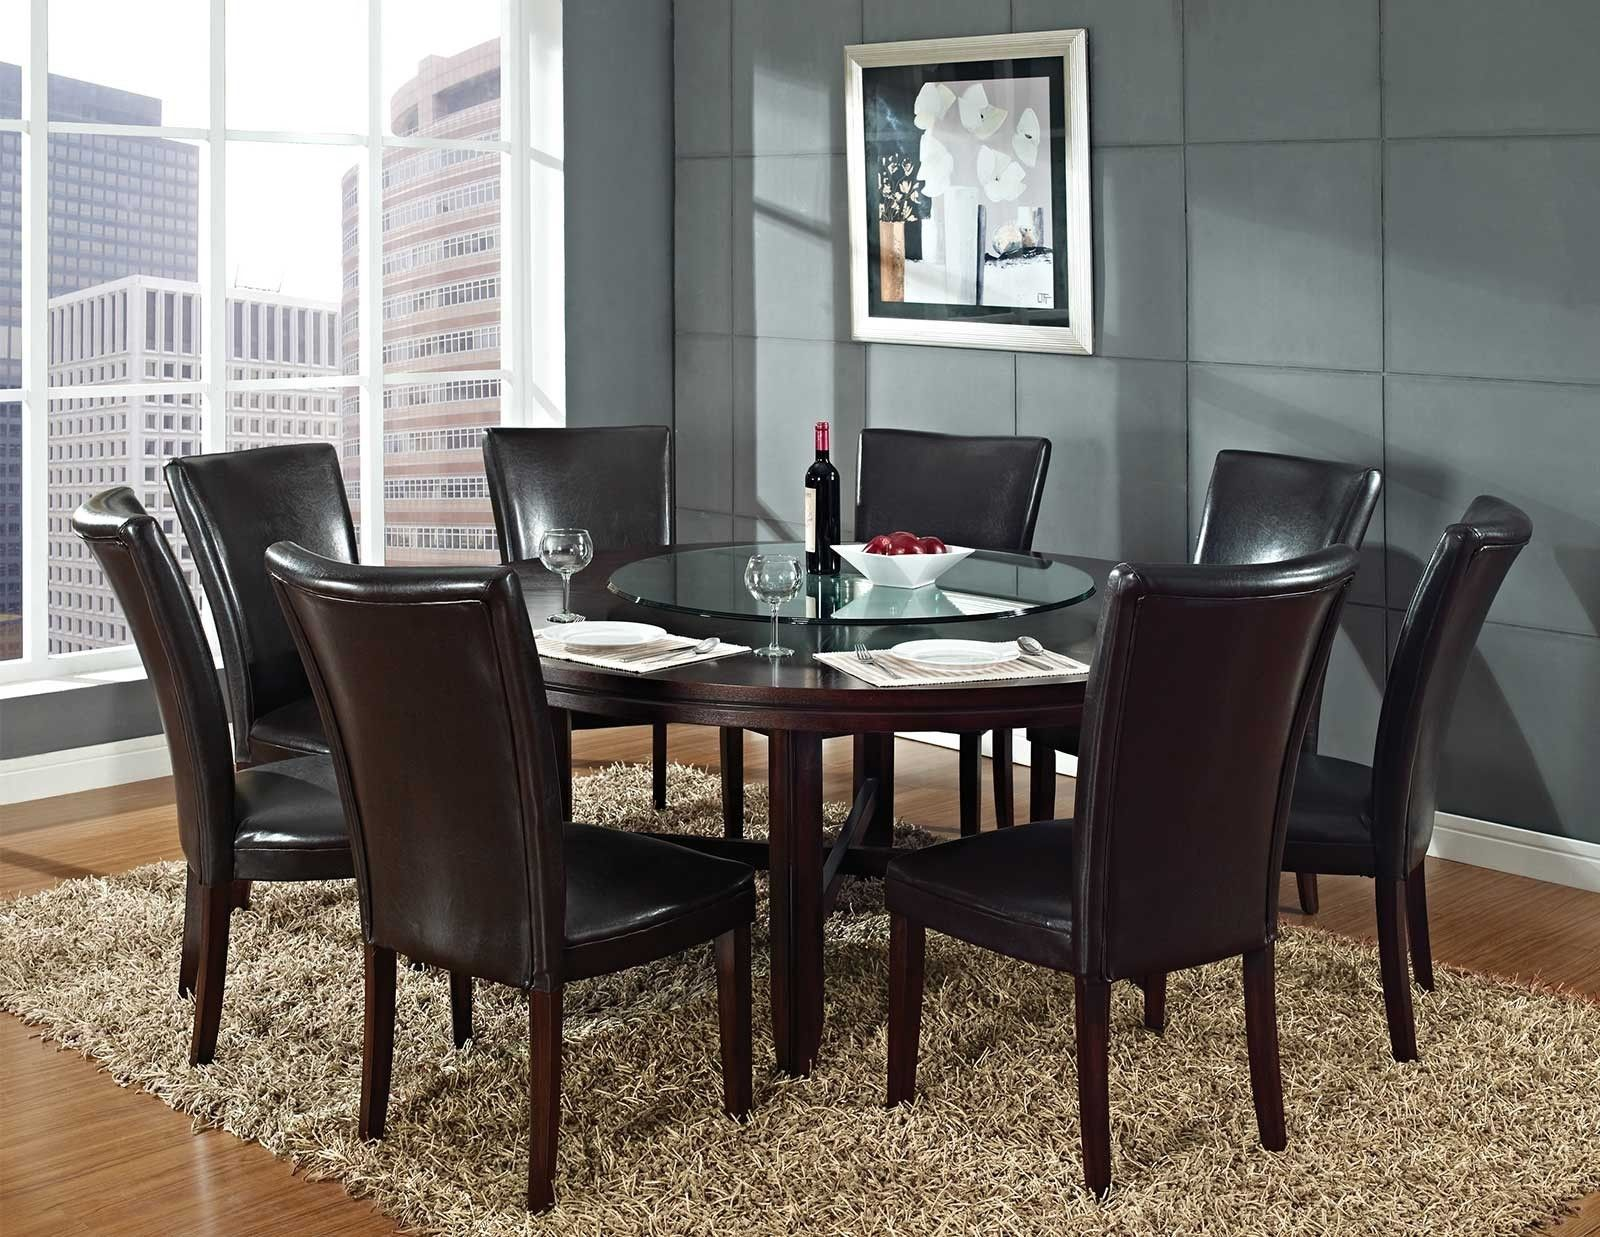 Round Glass Top Dining Table For 6